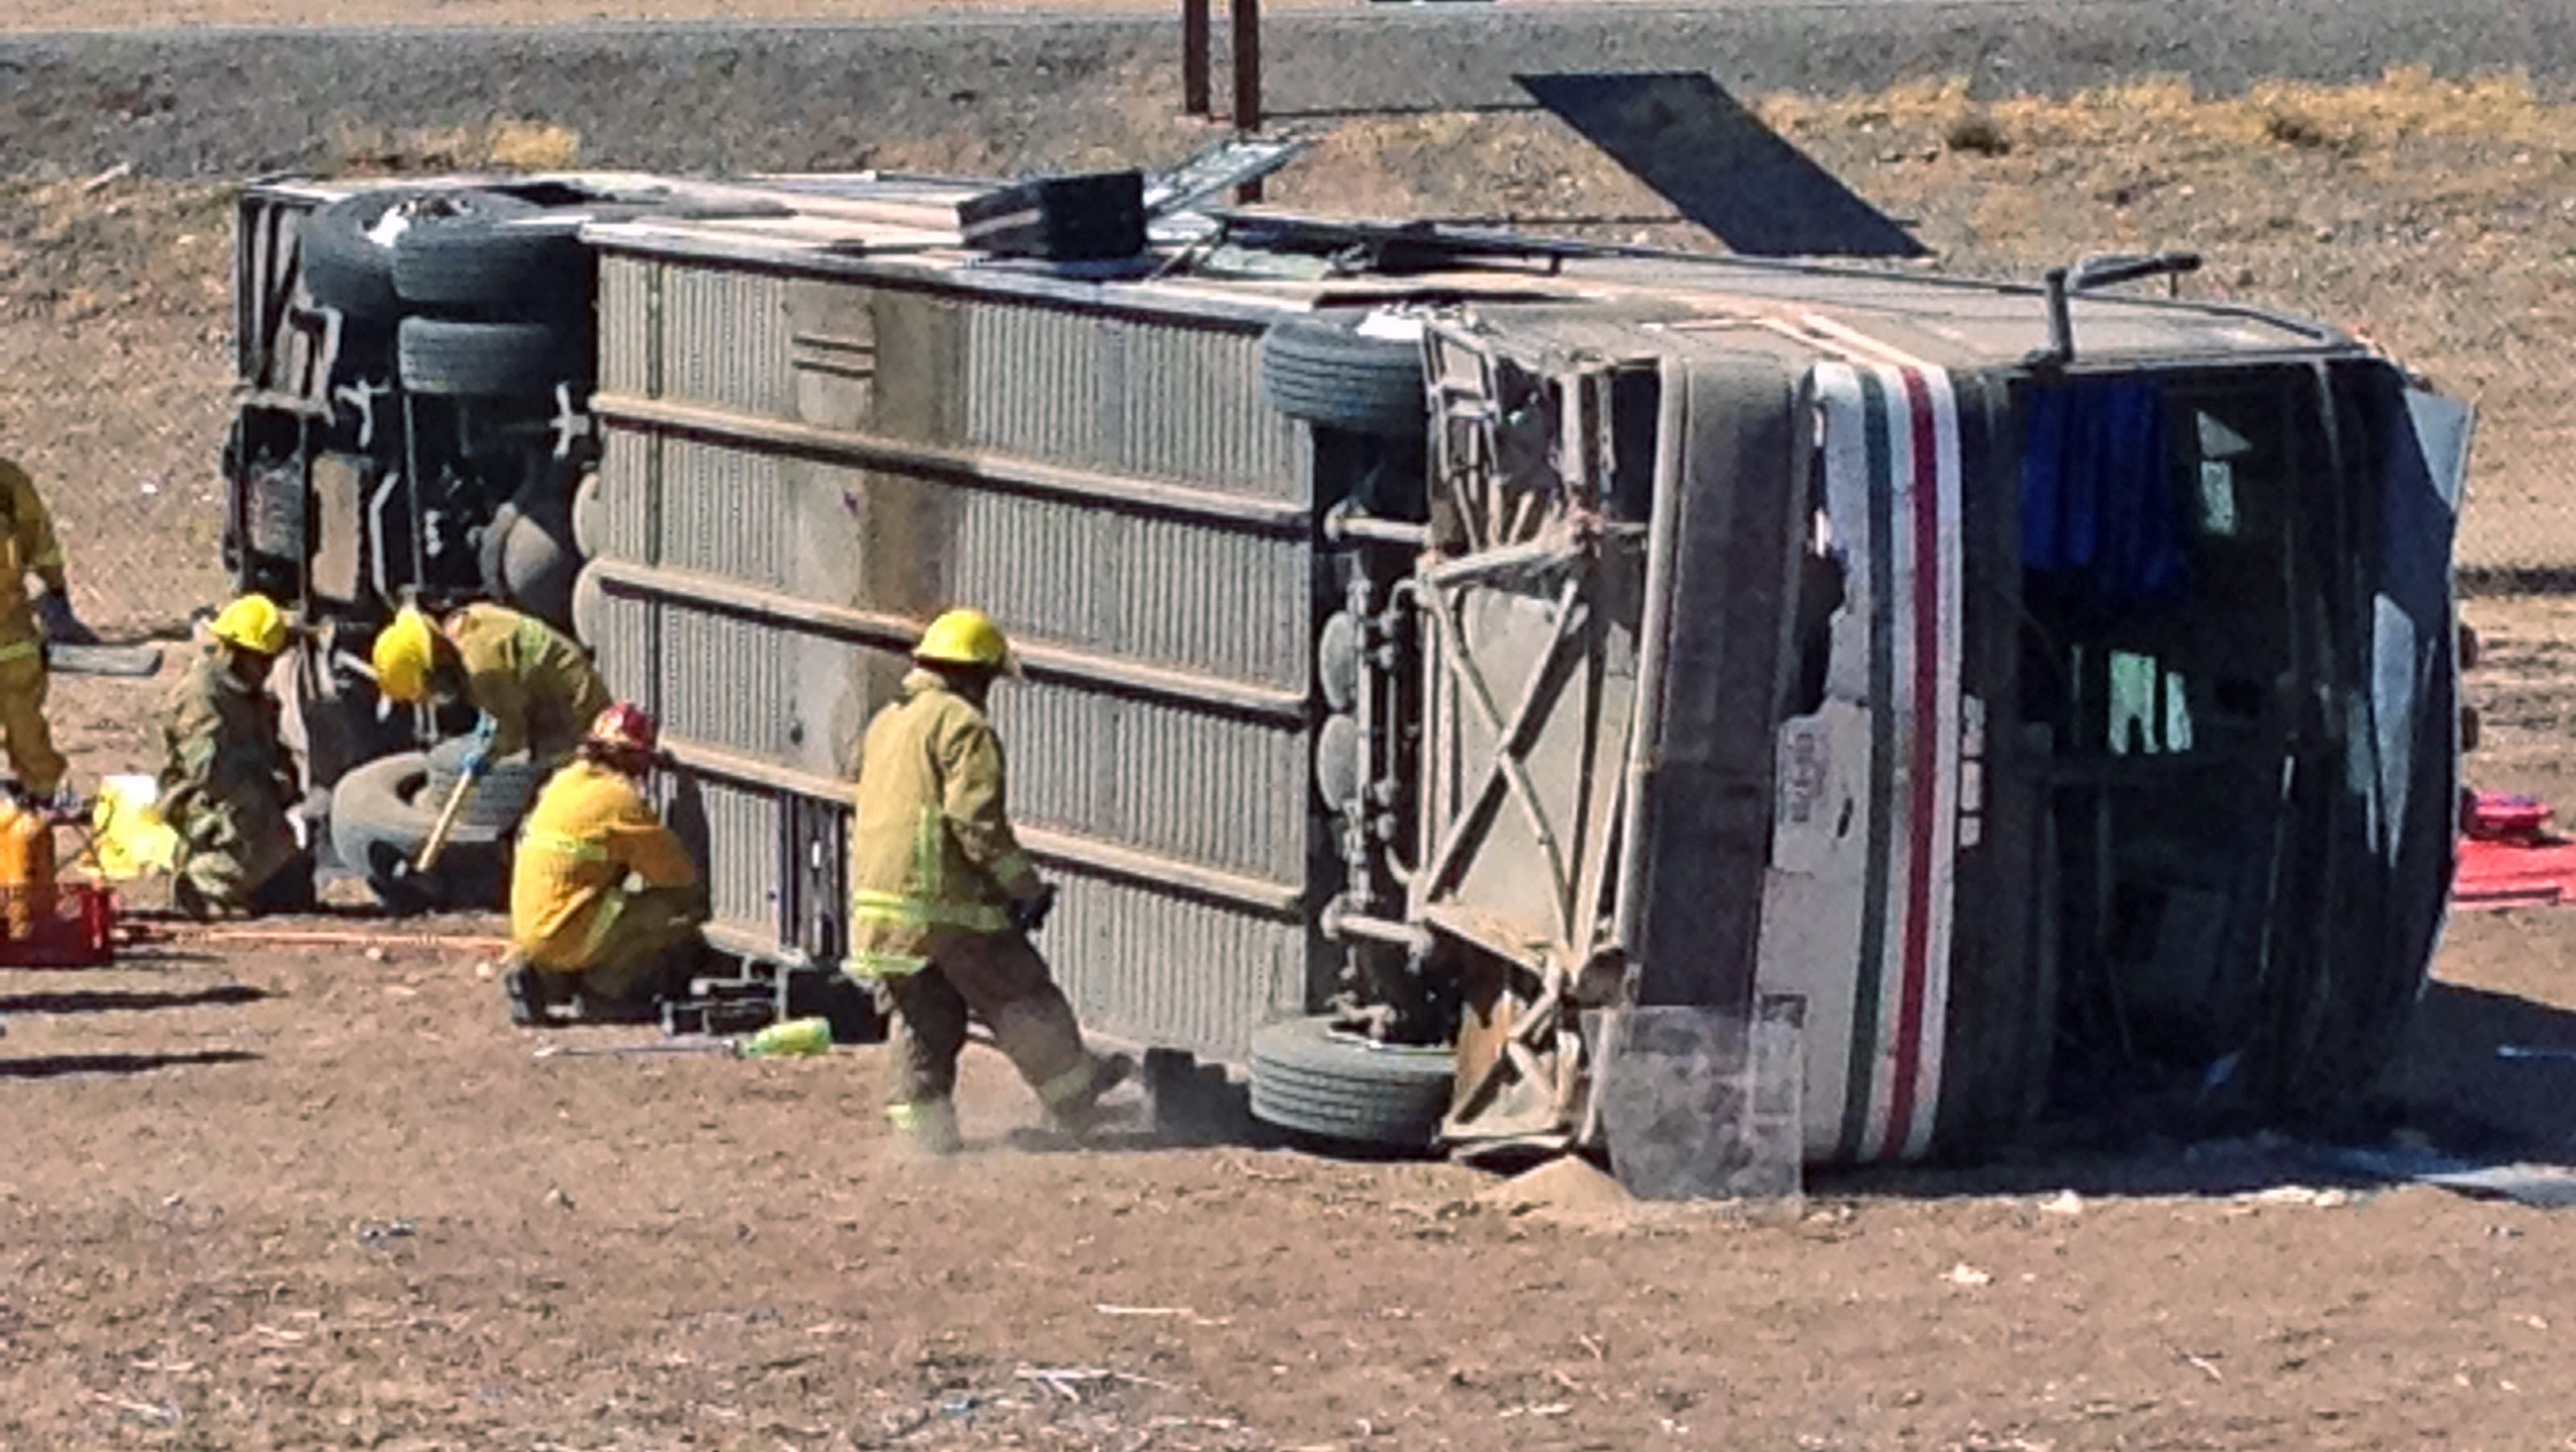 4 killed in truck bus accident near ariz border. Black Bedroom Furniture Sets. Home Design Ideas